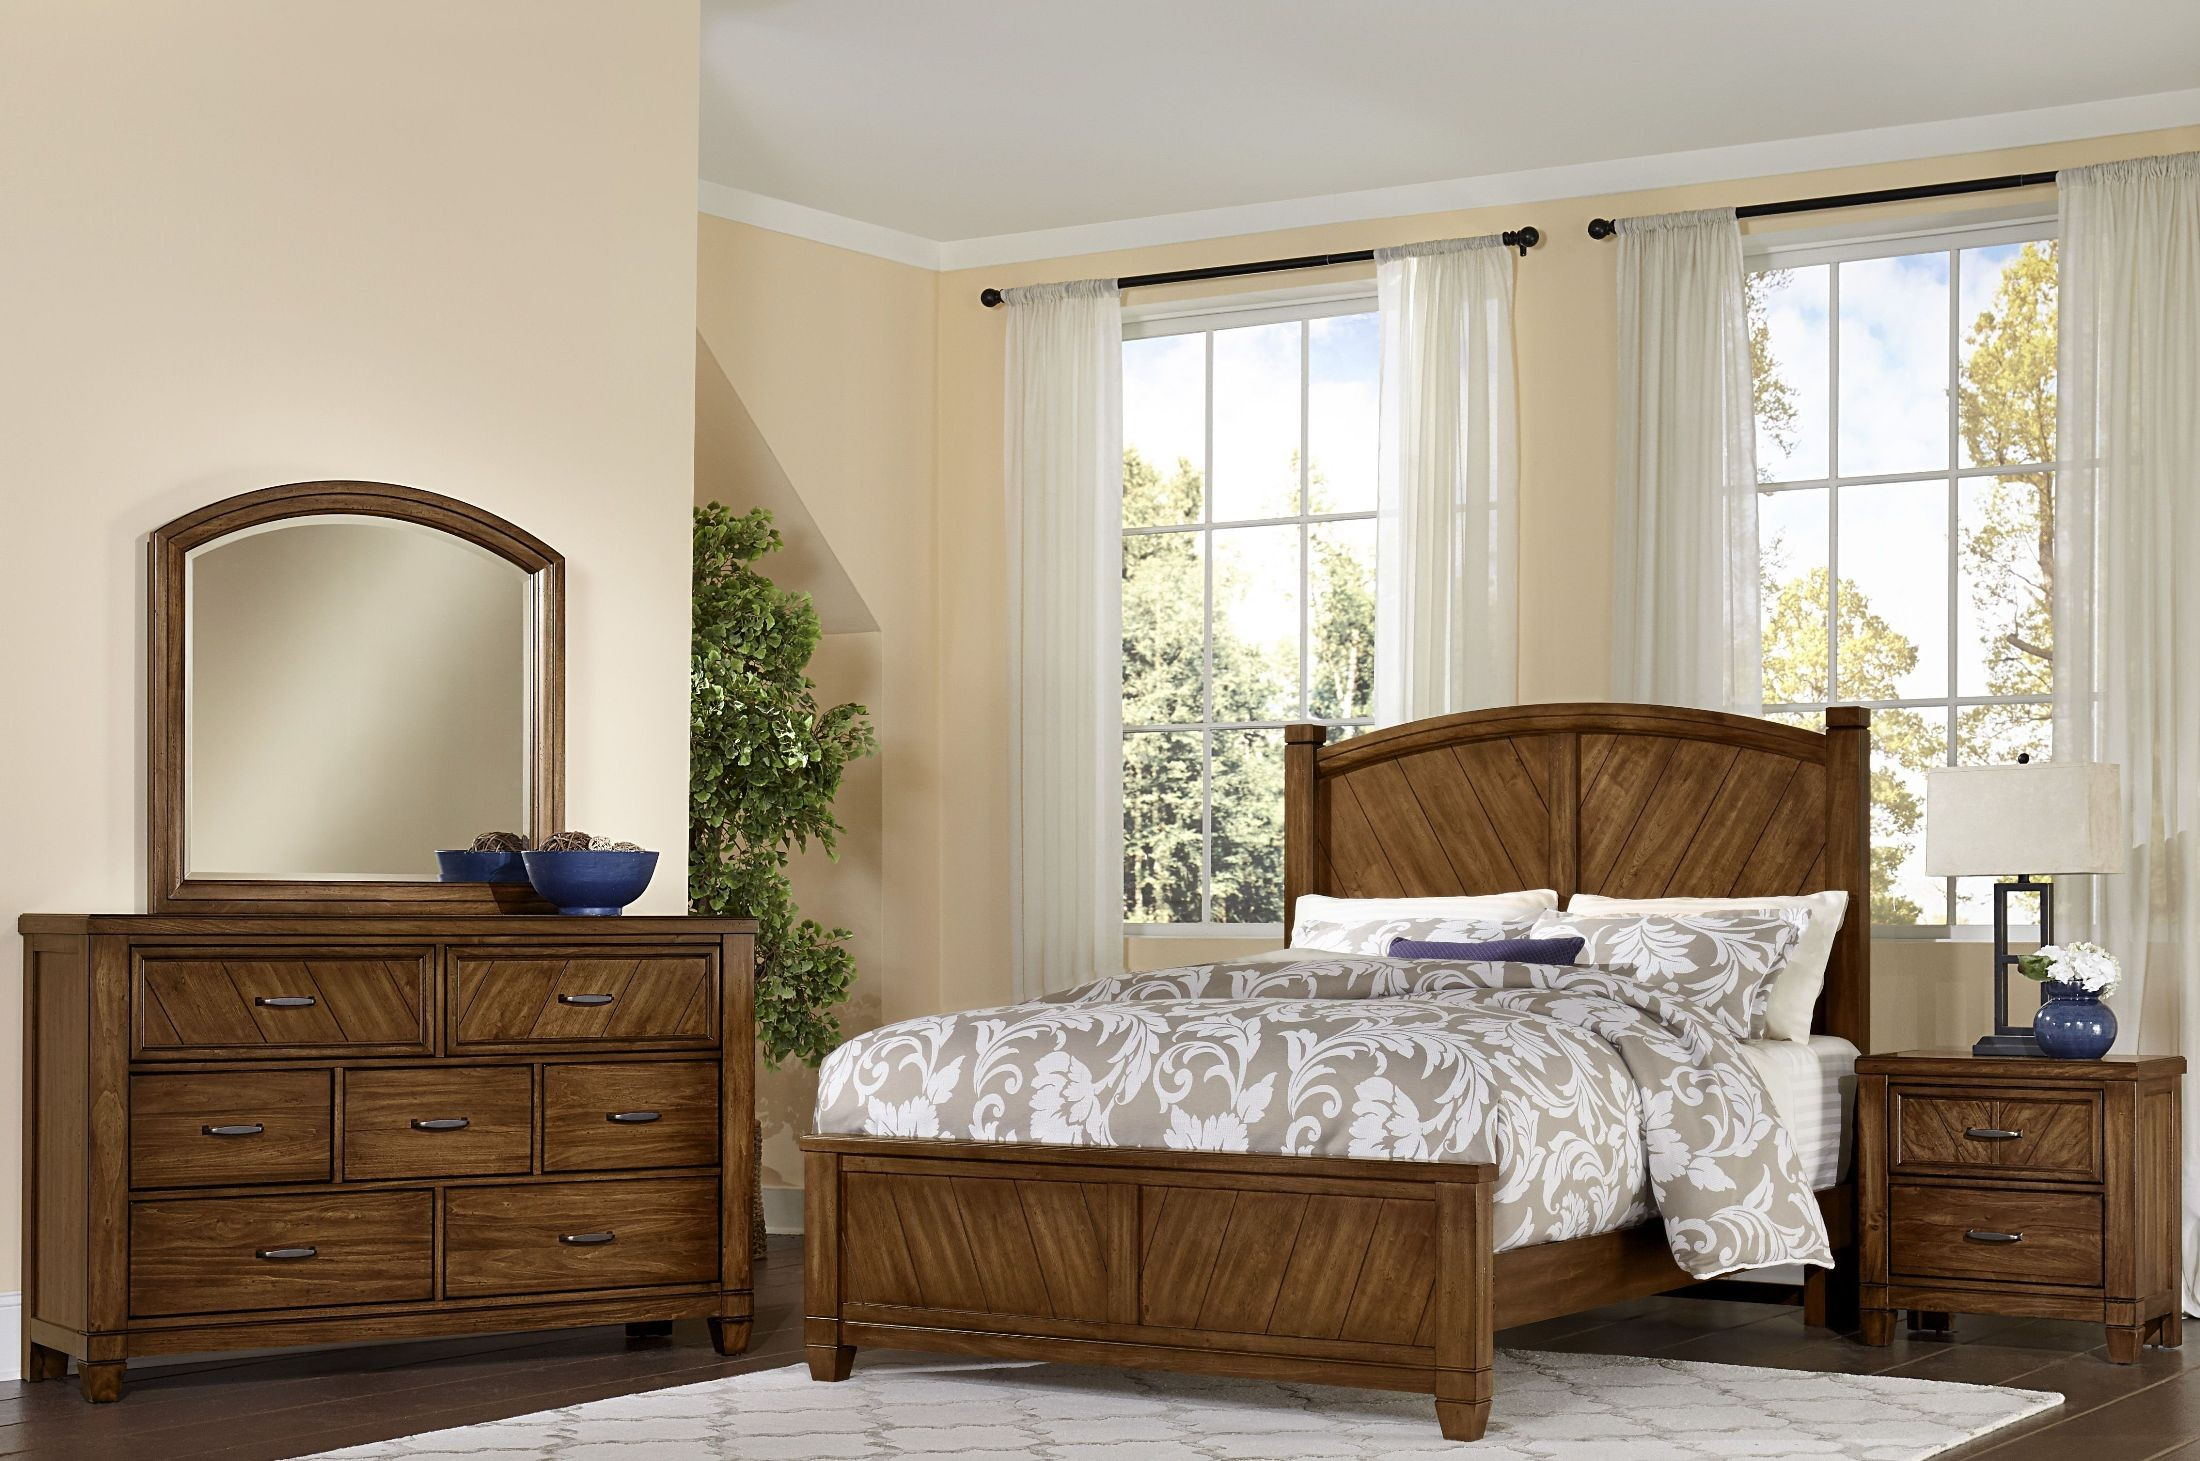 Rustic Cottage Rustic Cherry Panel Bedroom Set From Vaughn Bassett Coleman Furniture